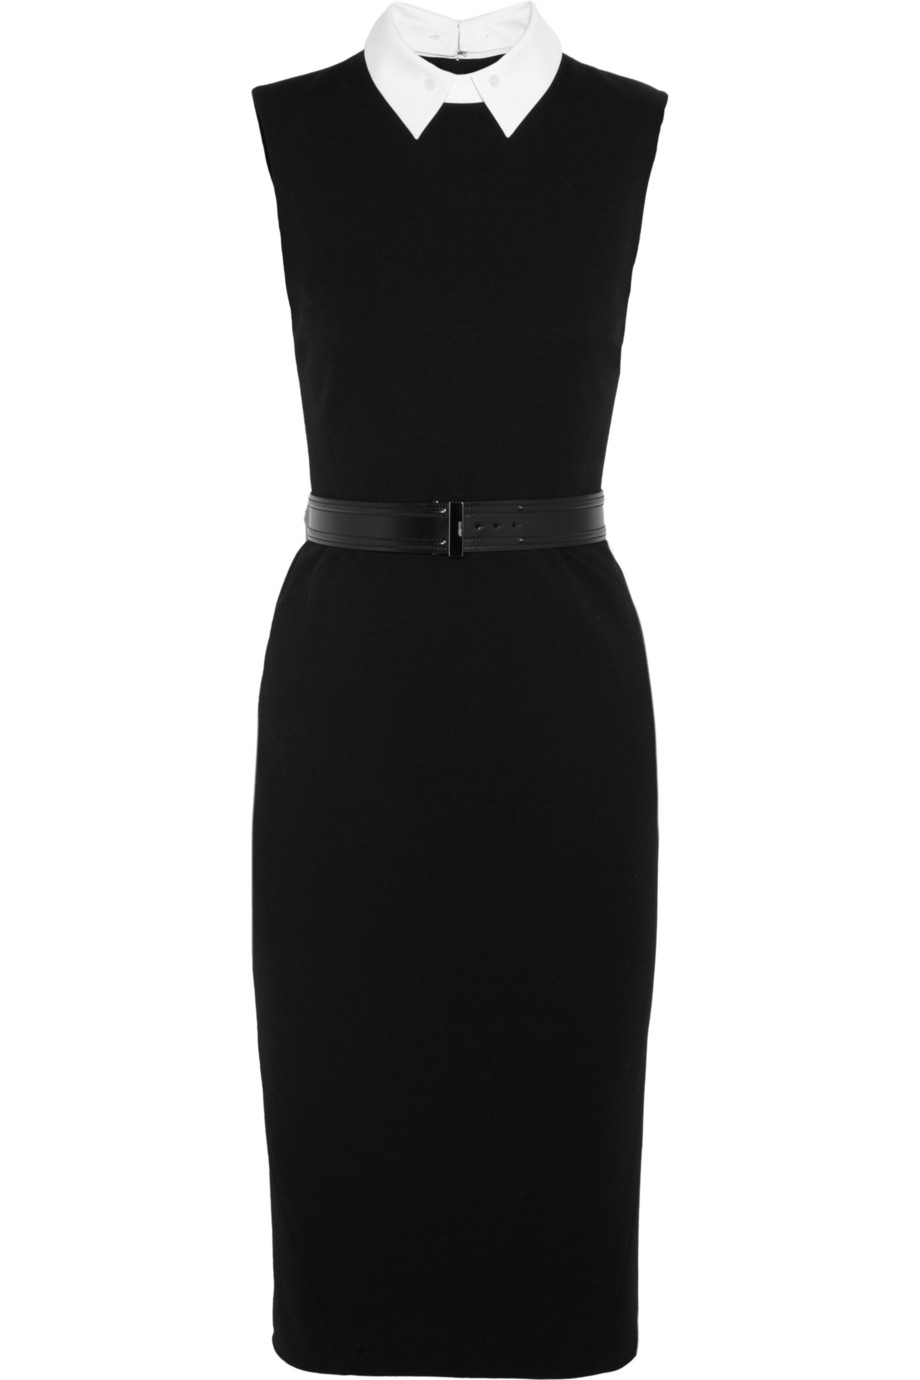 Jason Wu Contrasting Collar Belted Ponte Dress